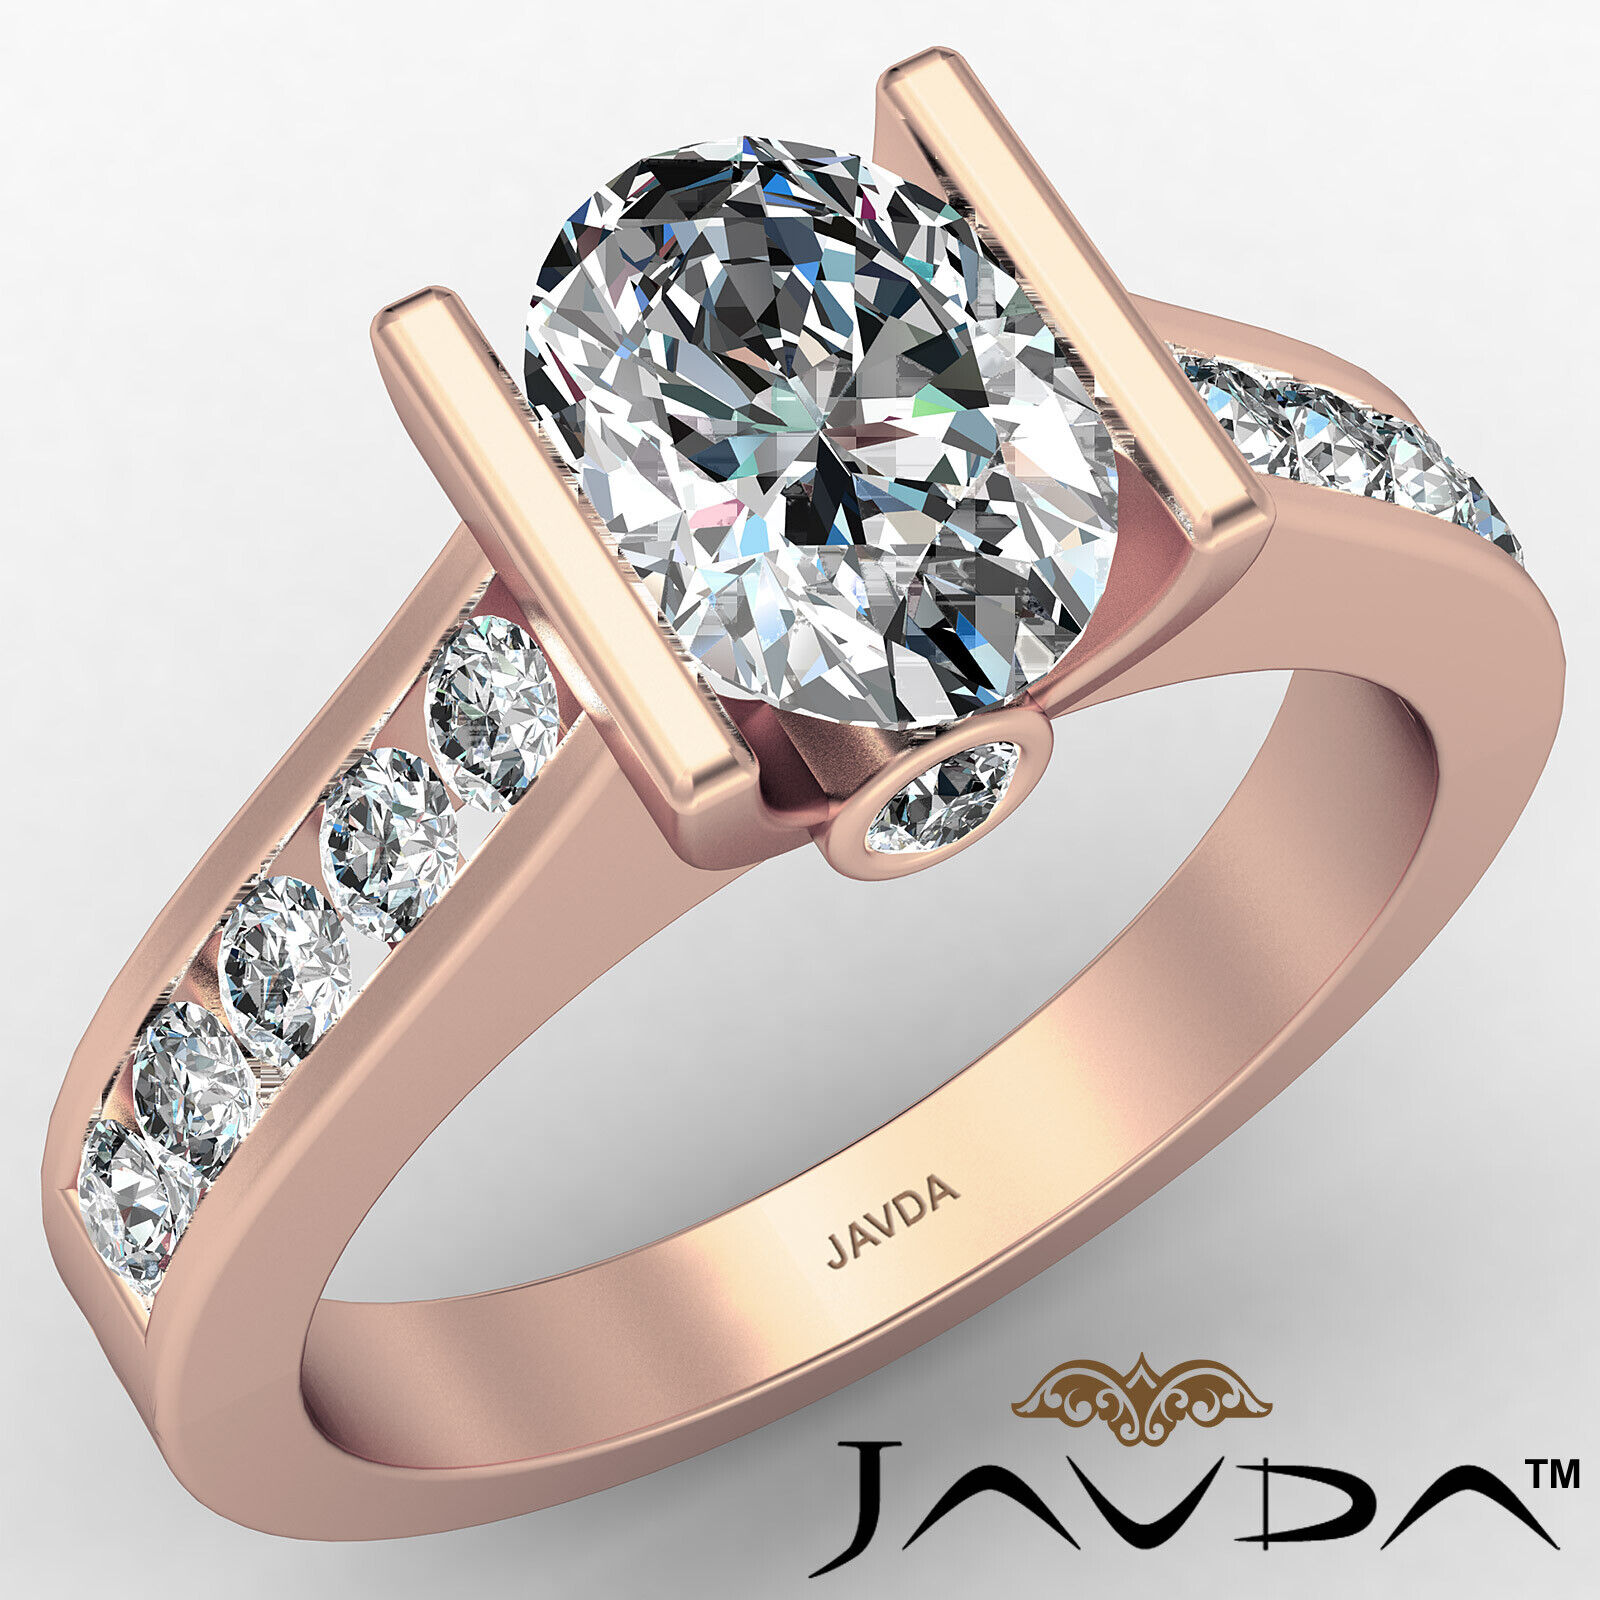 Oval Diamond Engagement Bezel Setting Ring GIA, E Color & SI2 clarity 1.4 ctw. 2